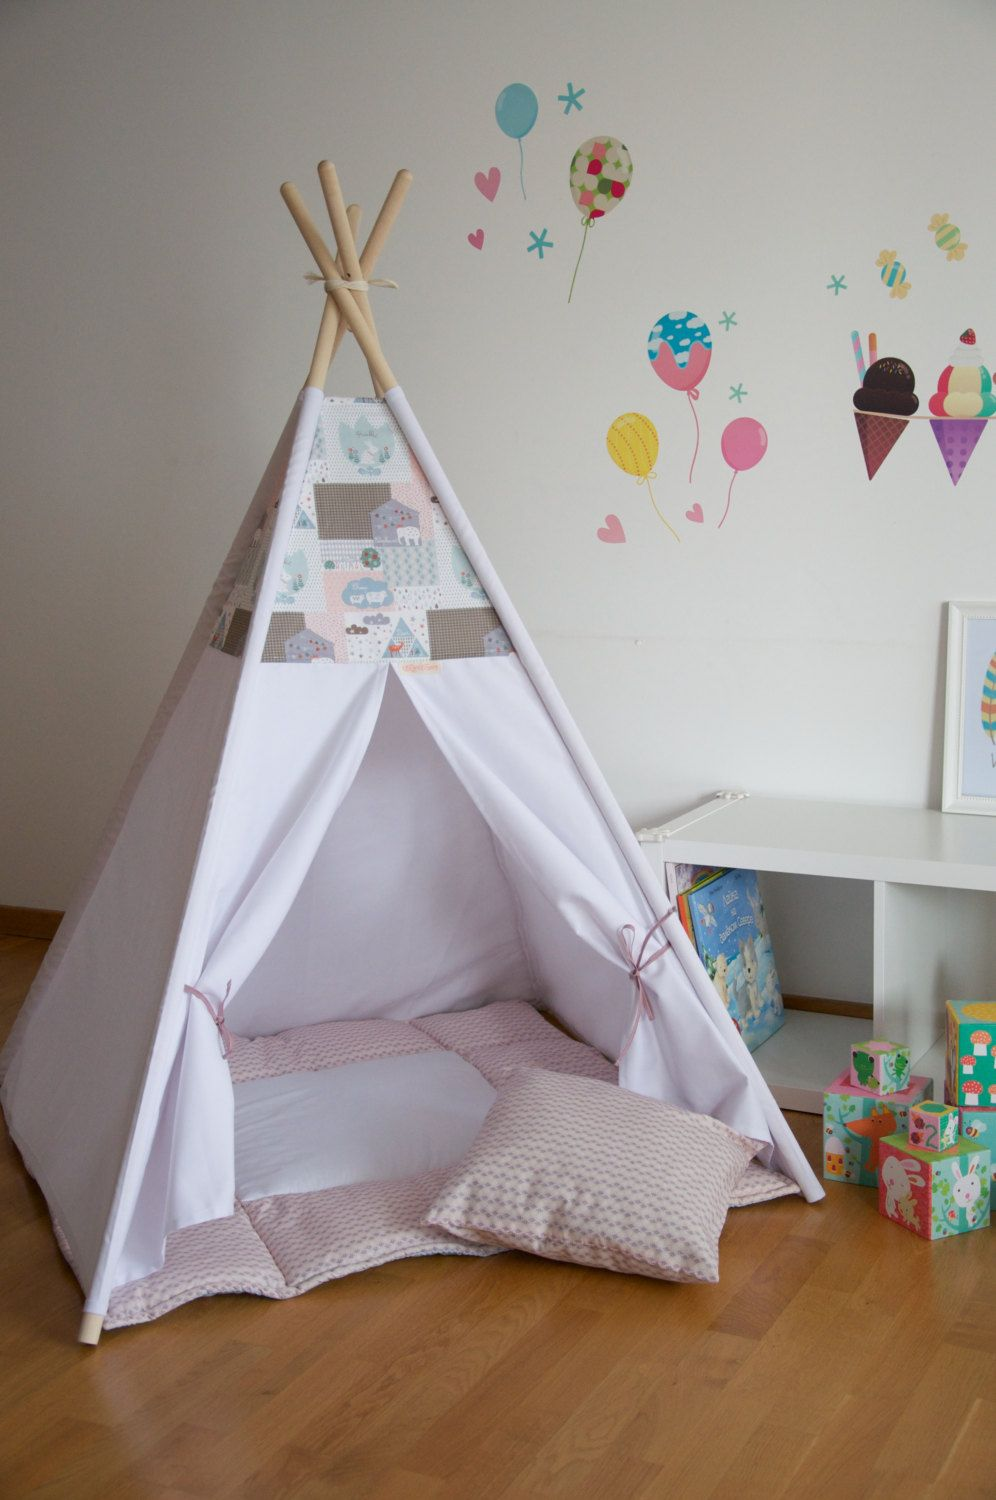 Girly rose kids teepee play tent with a padded floor mat by WigiWama on Etsy & Girly rose kids teepee play tent with a padded floor mat by ...